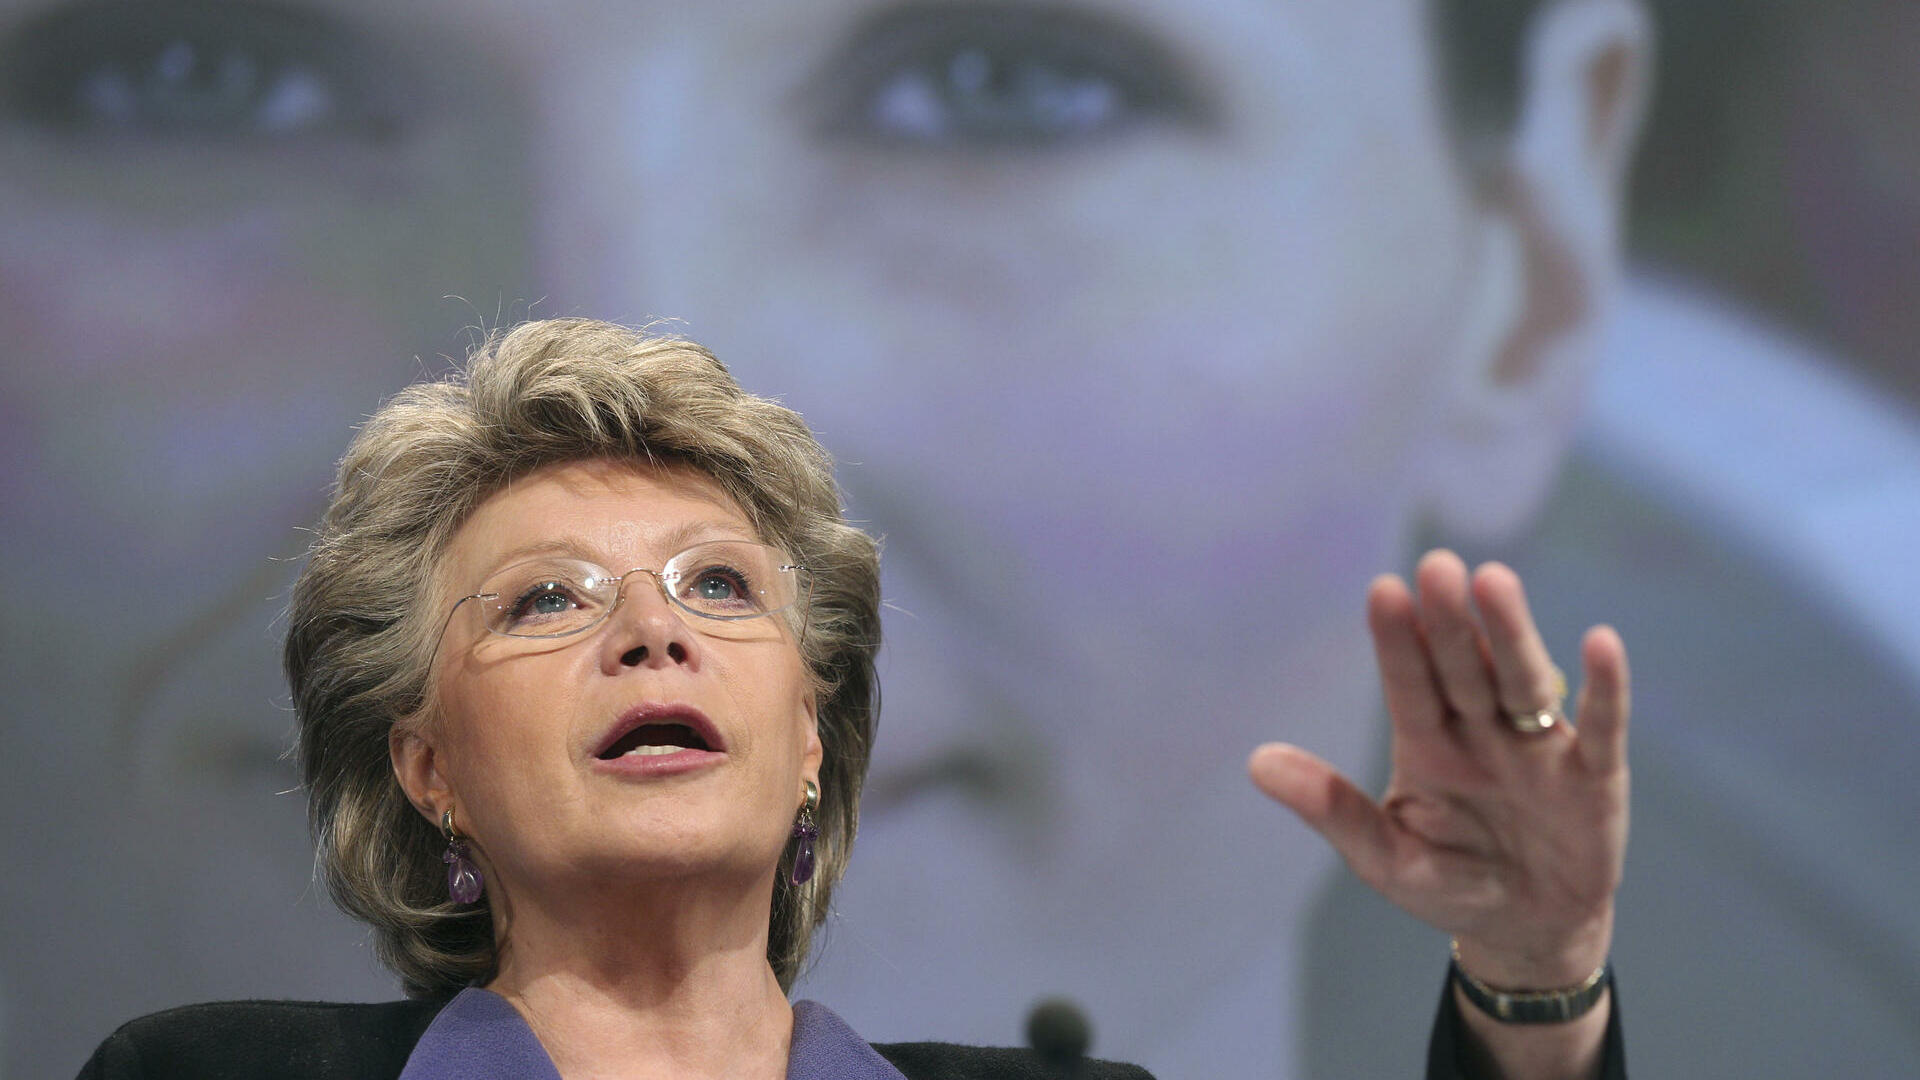 European Commissioner for Justice, Fundamental Rights and Citizenship Viviane Reding Quelle: dapd